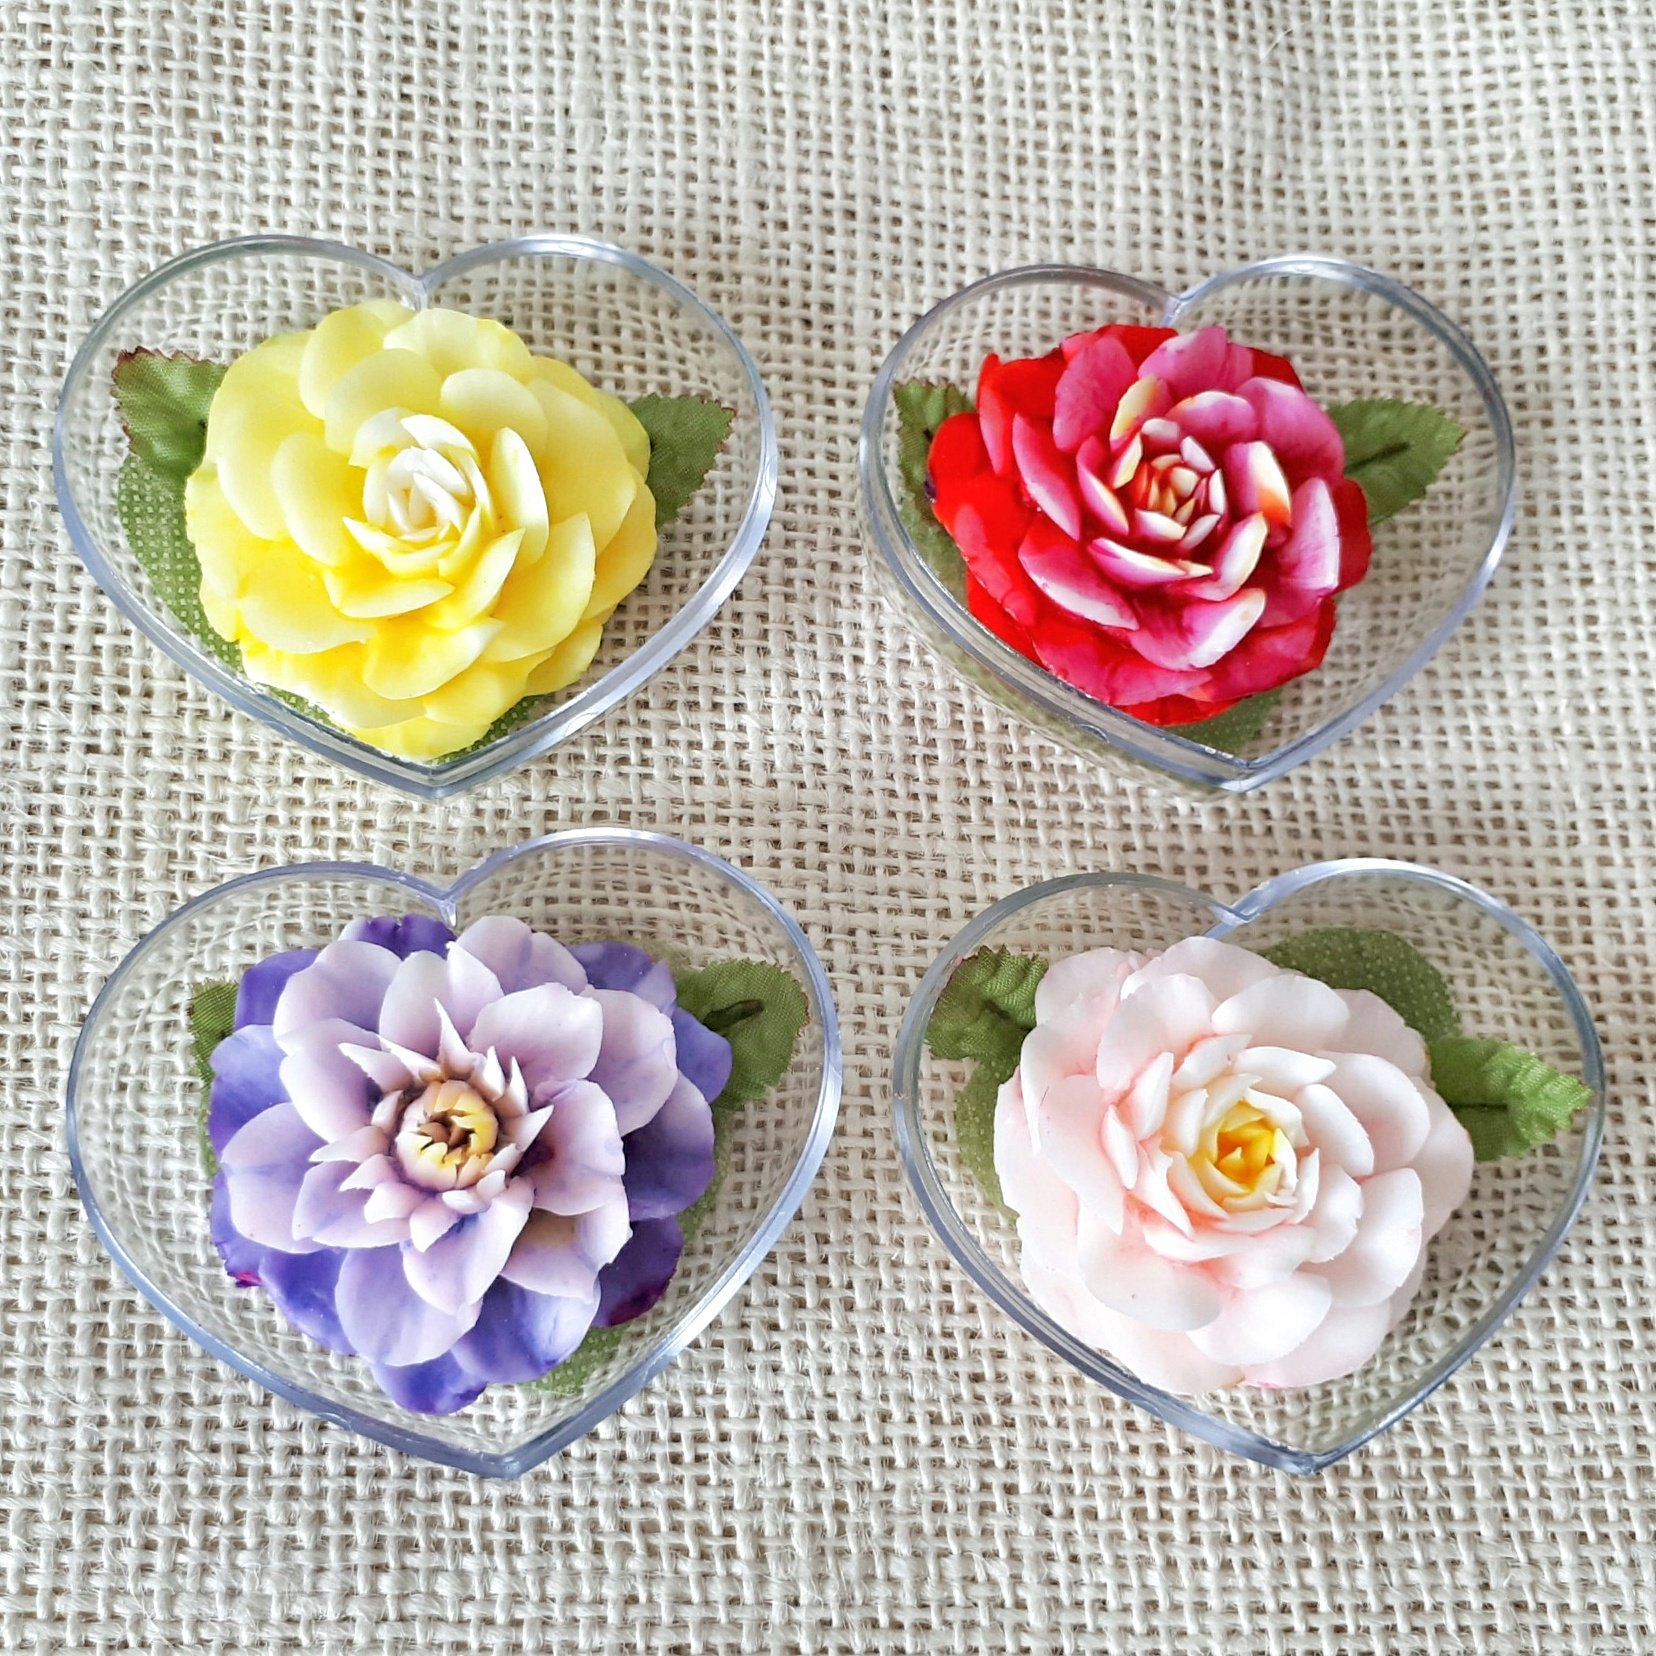 Blooming Flower Set of 4 Hand Carved Decorative Soaps with Jasmine Aroma Essential Oil, Handmade Flower Soap Carving by Thai Artisan. Unique Gift and Wedding Favor Ideas in Heart Box by Bamboo